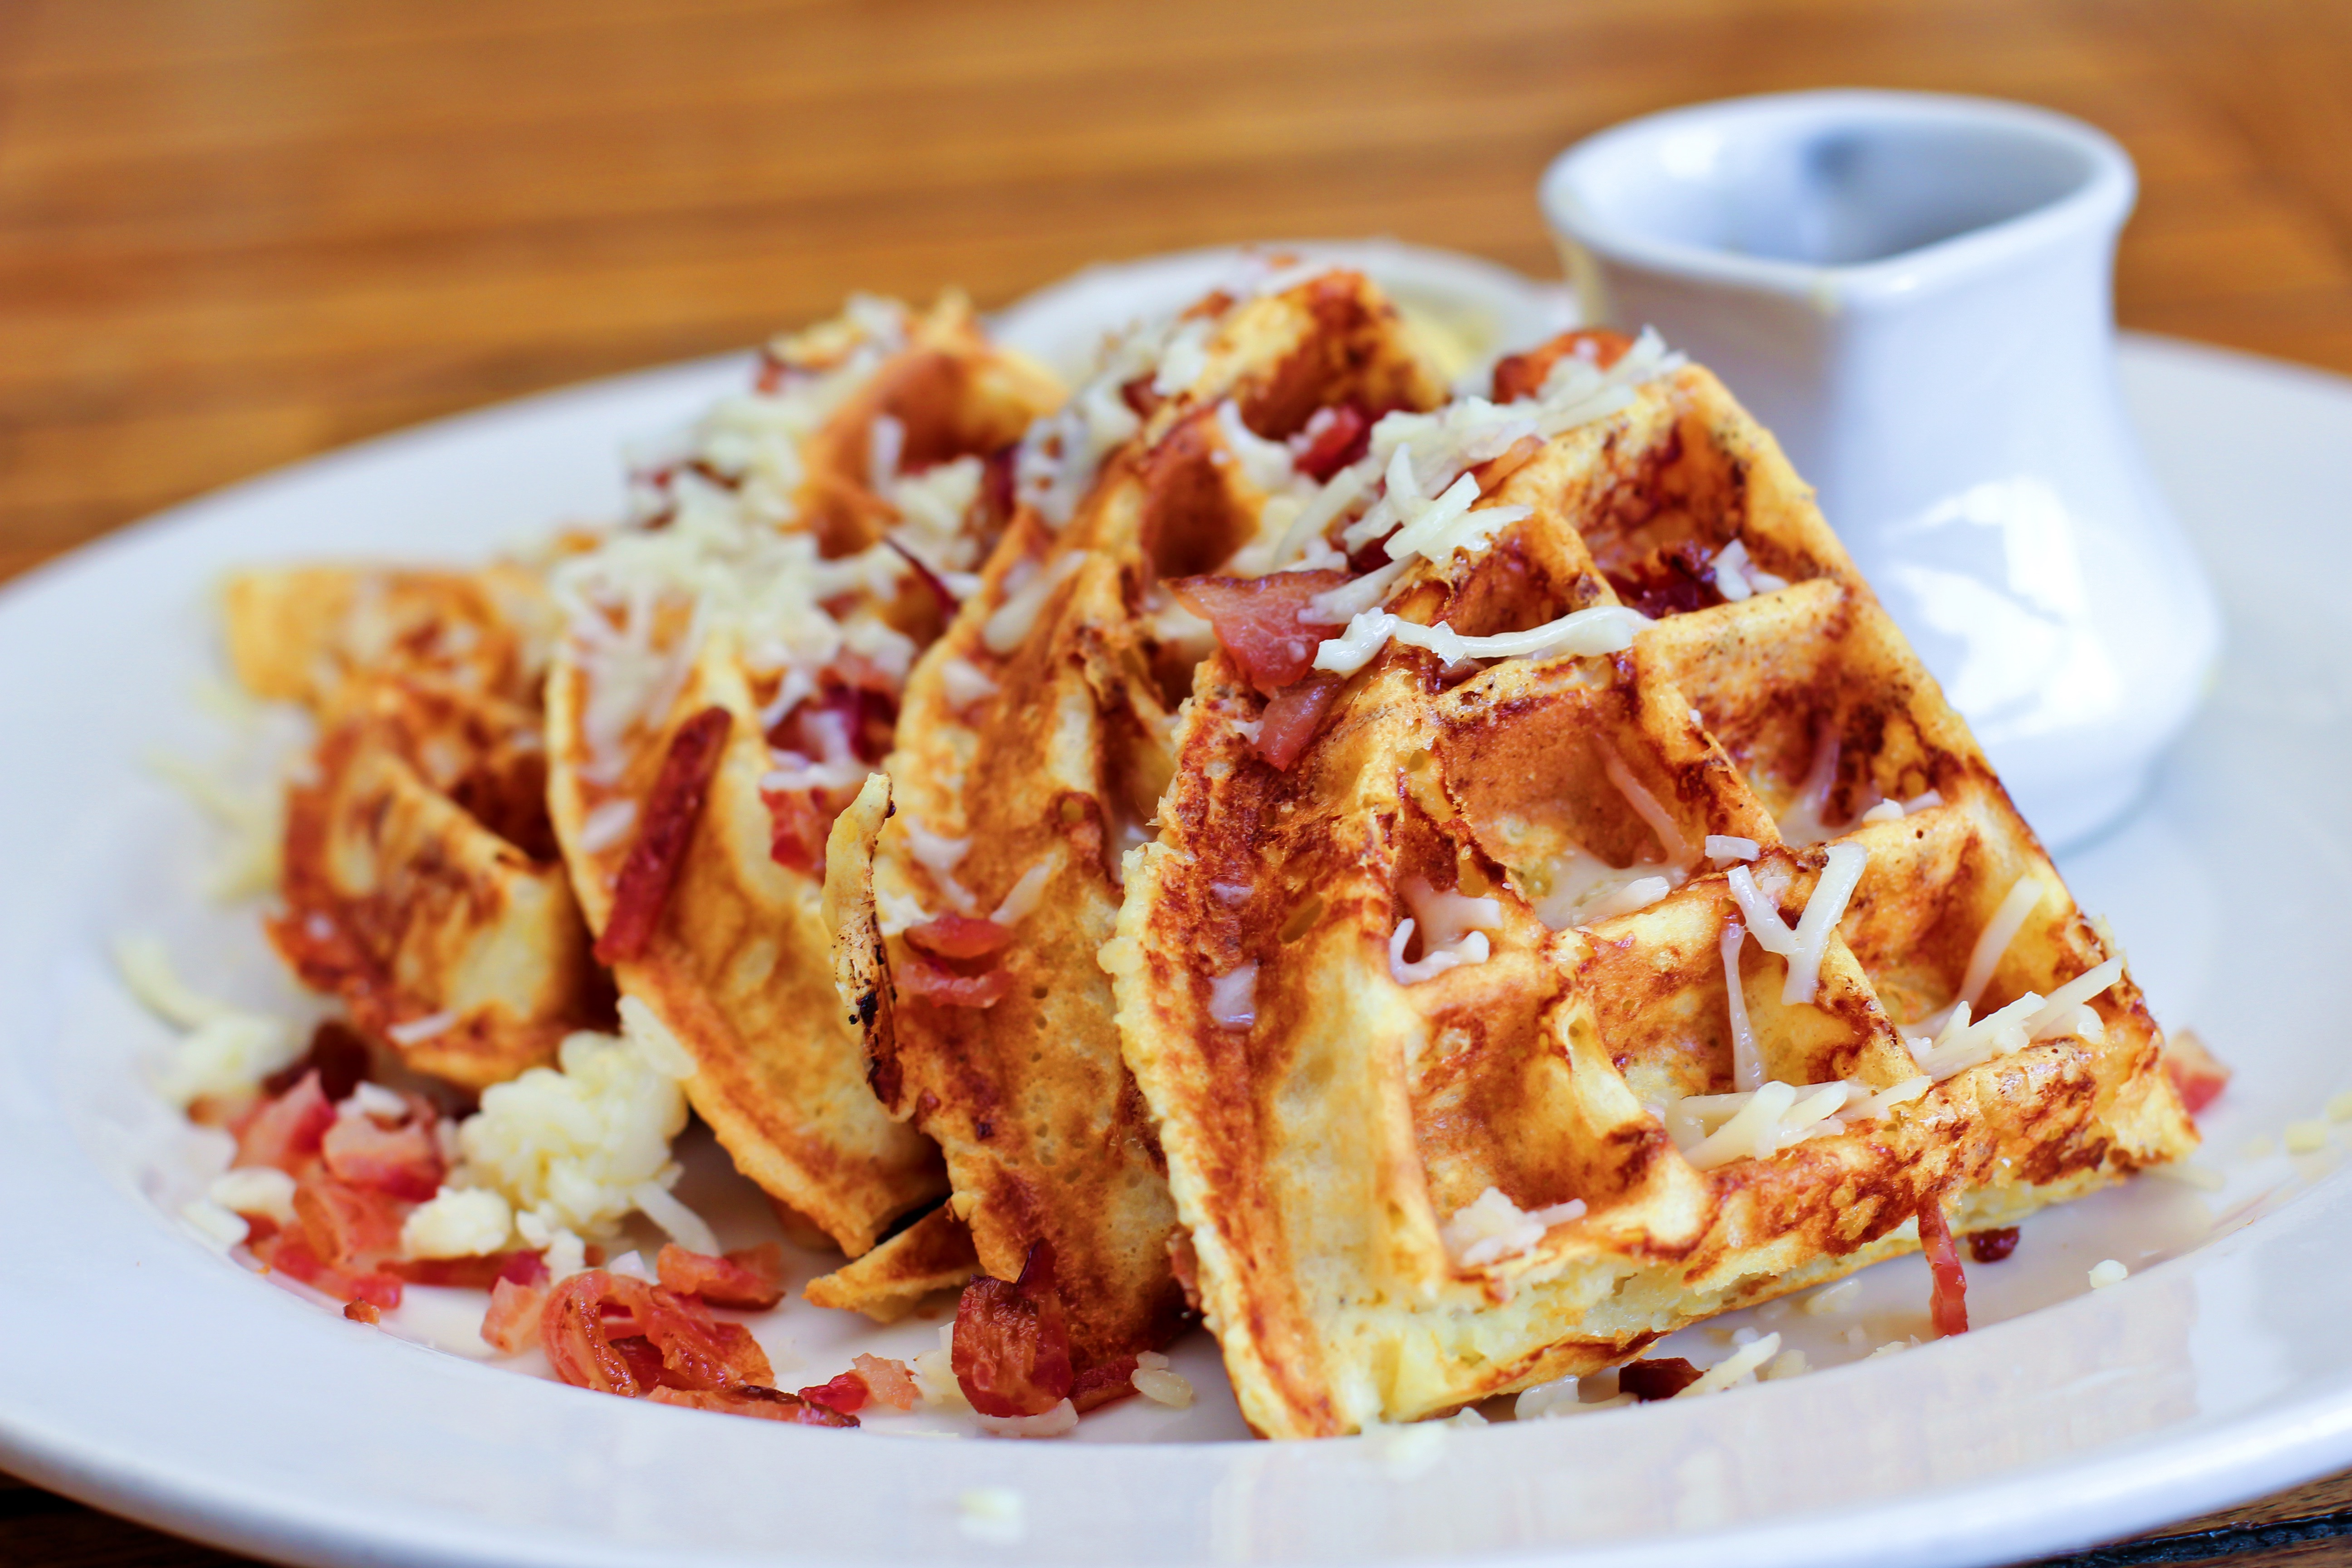 Grits n' Bits Waffles: All the Deliciousness in One Place